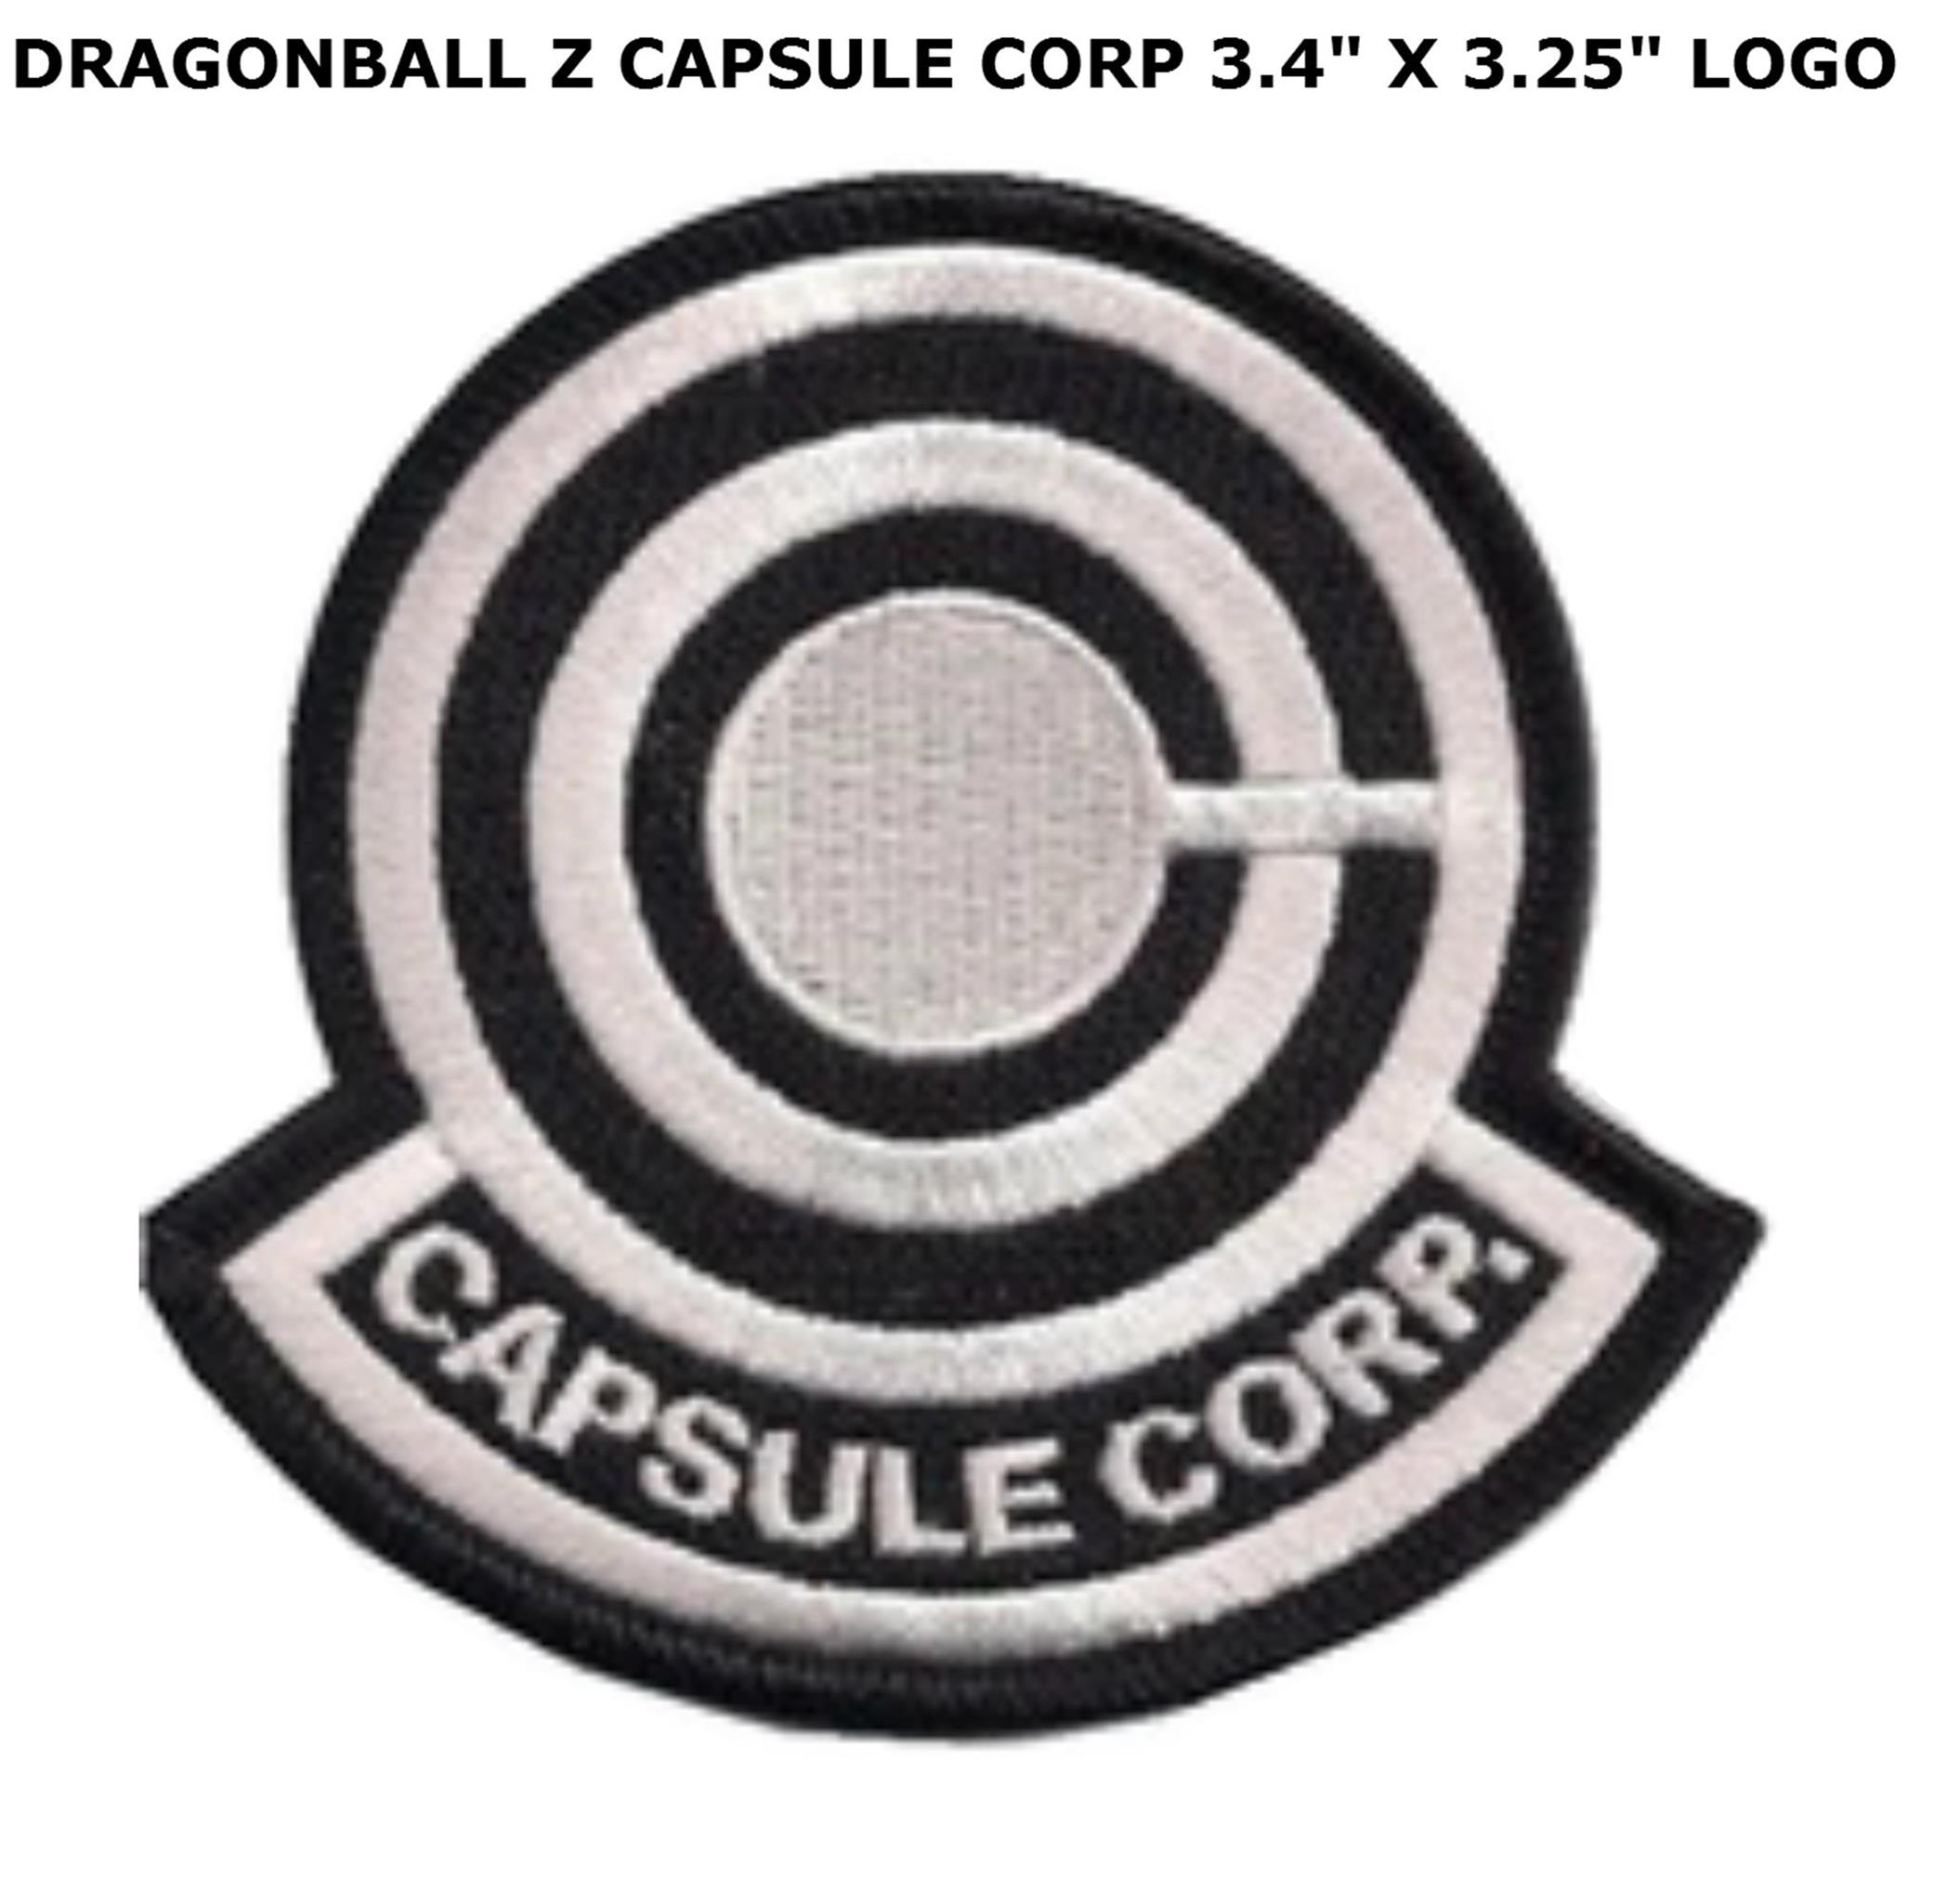 """Superheroes Anime Dragon Ball Z Capsule Corp 3.4"""" X 3.25"""" Embroidered Iron/Sew-on Applique Patch"""